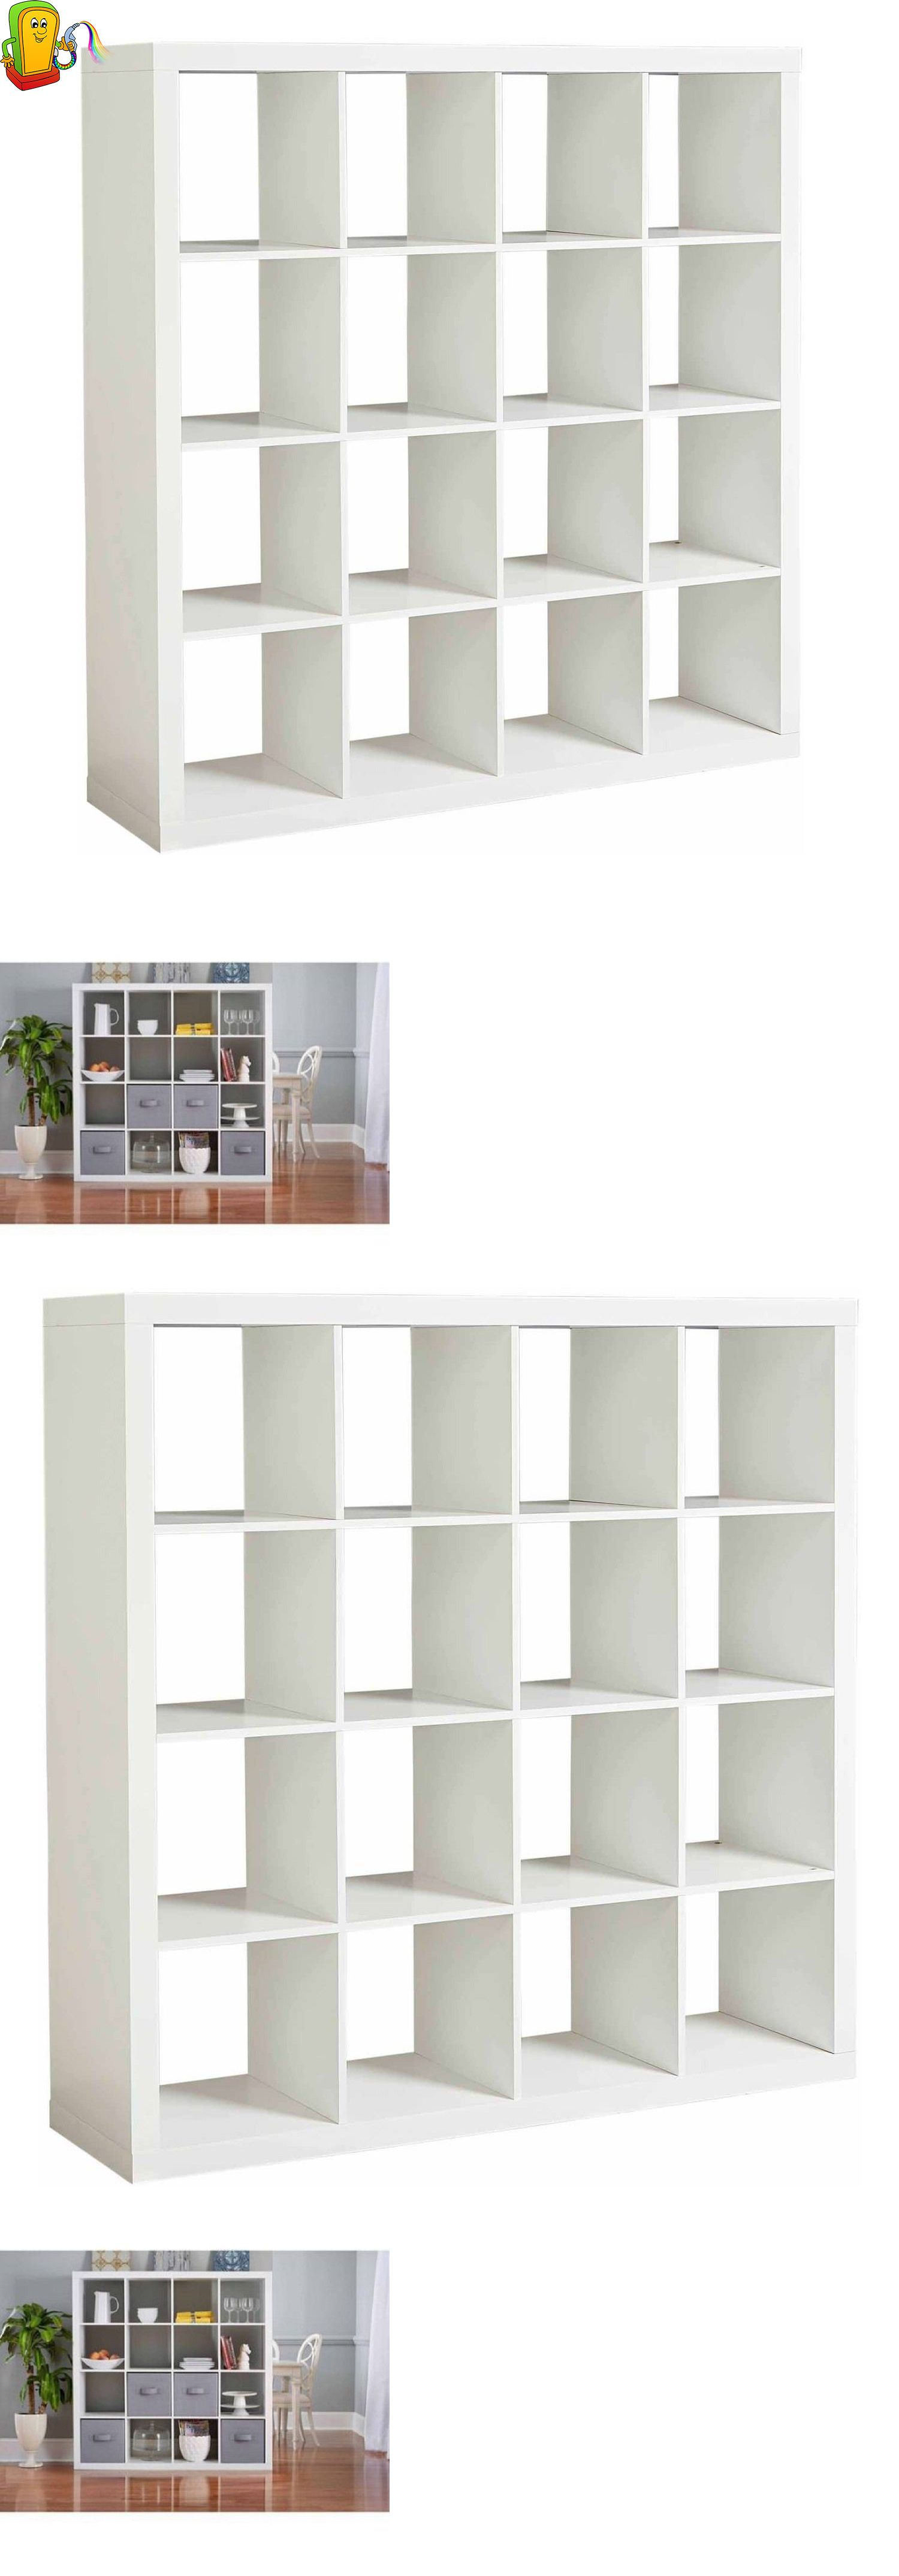 bookcases  modern storage cube organizer  cubbies shelves  - bookcases  modern storage cube organizer  cubbies shelves bookcasecloset white new